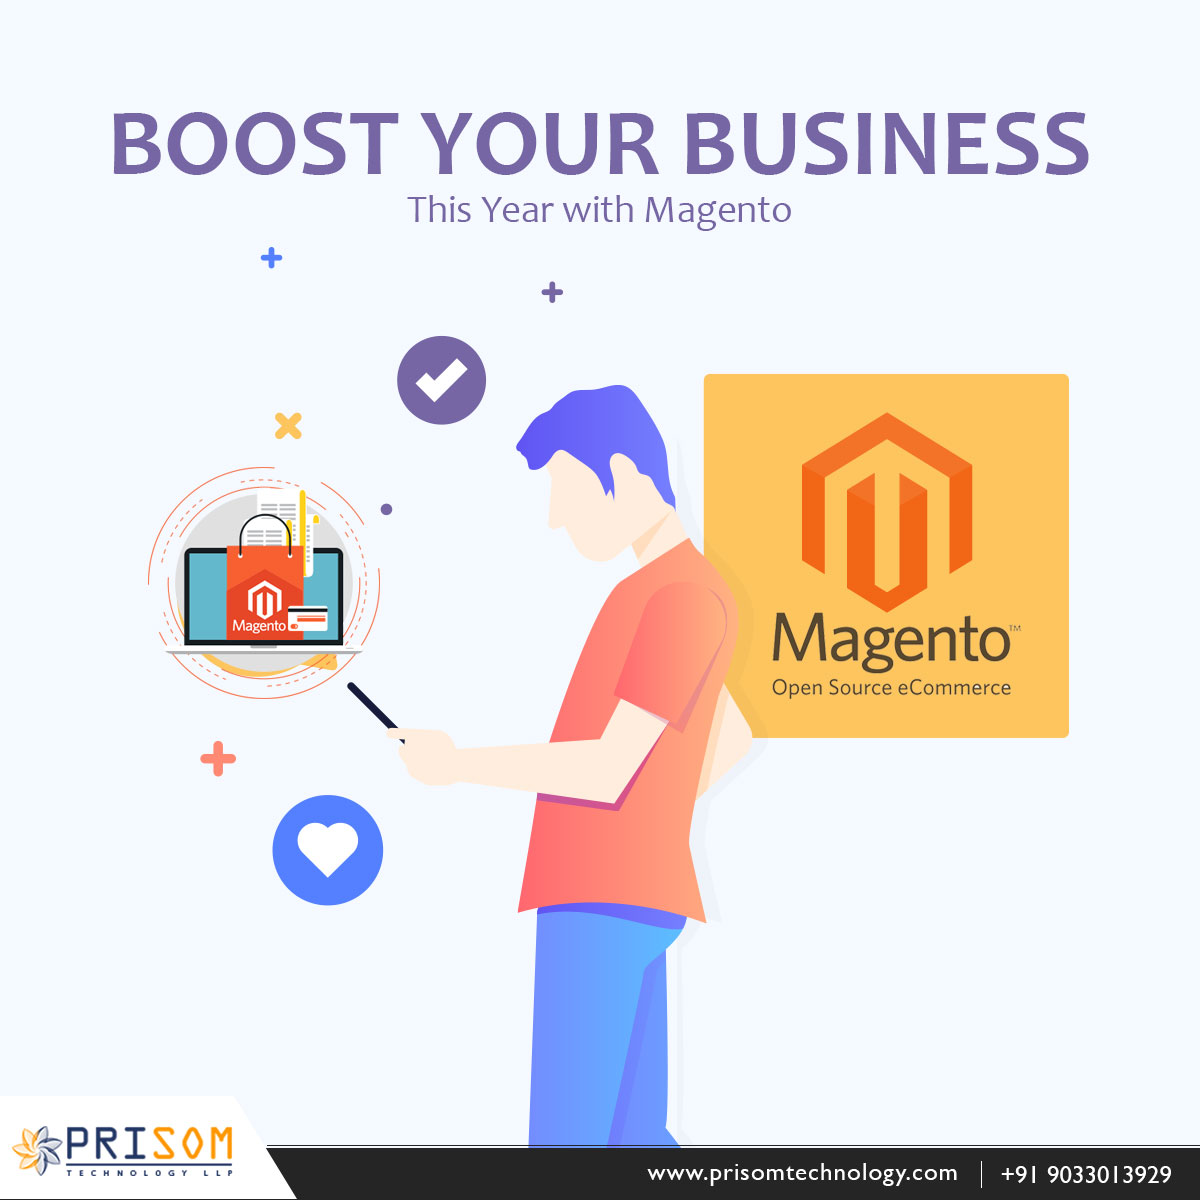 Boost-Your-Business-This-Year-with-Magento